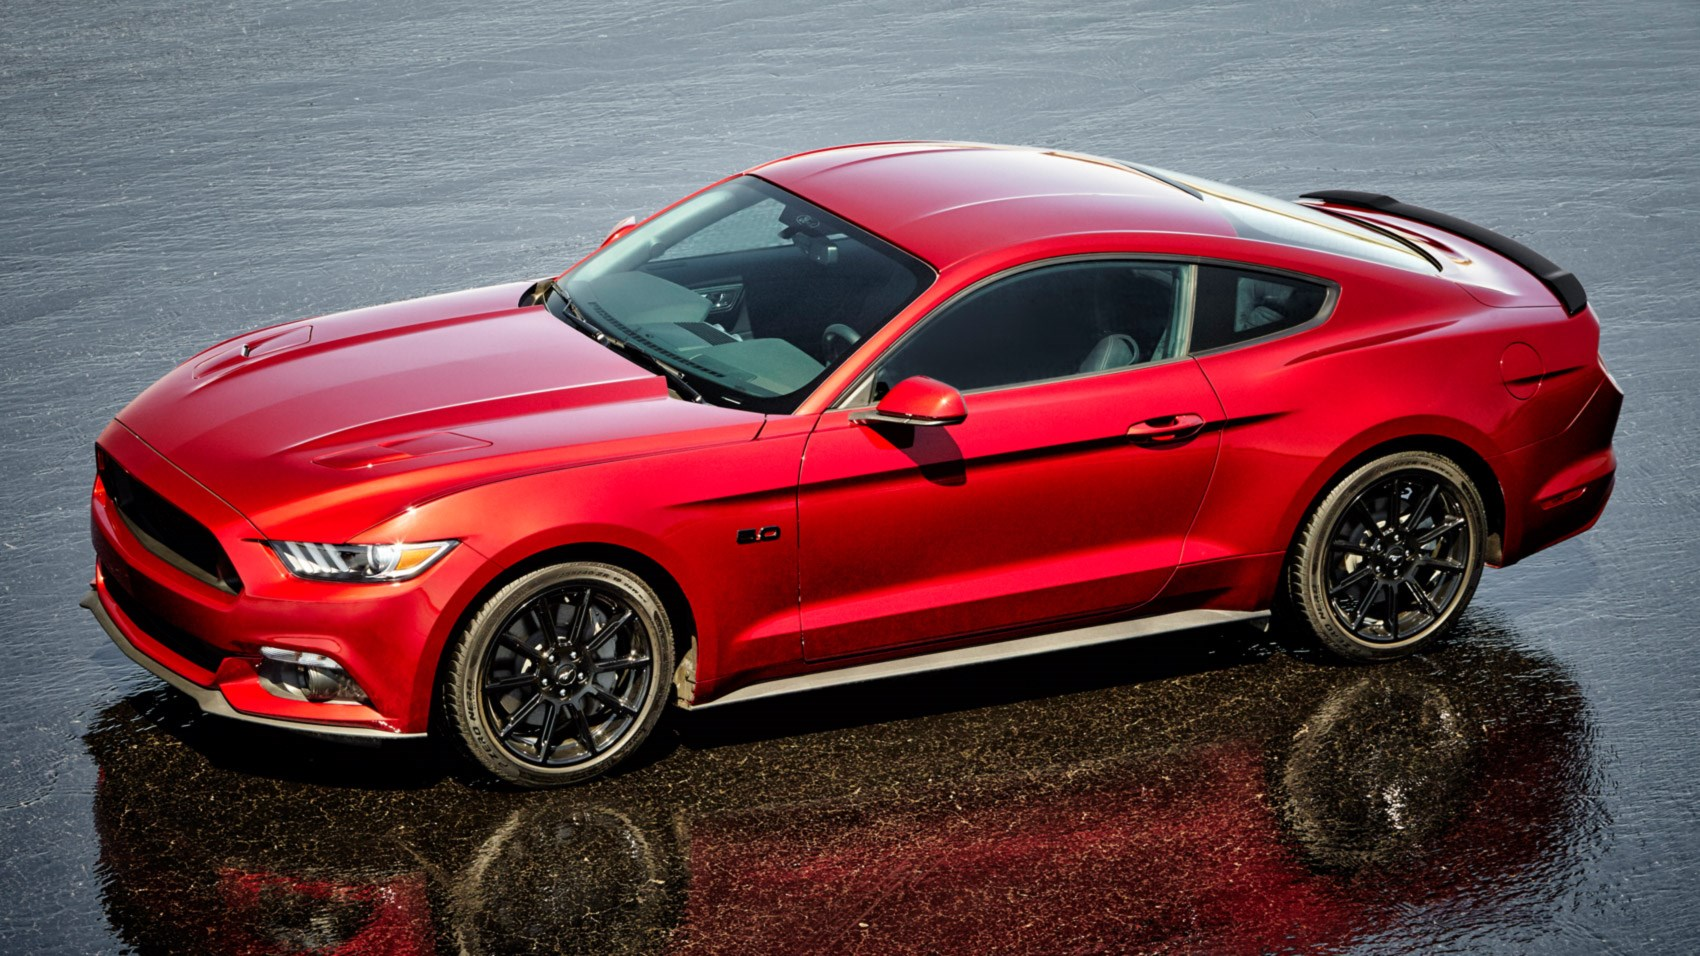 2016 Ford Mustang #3